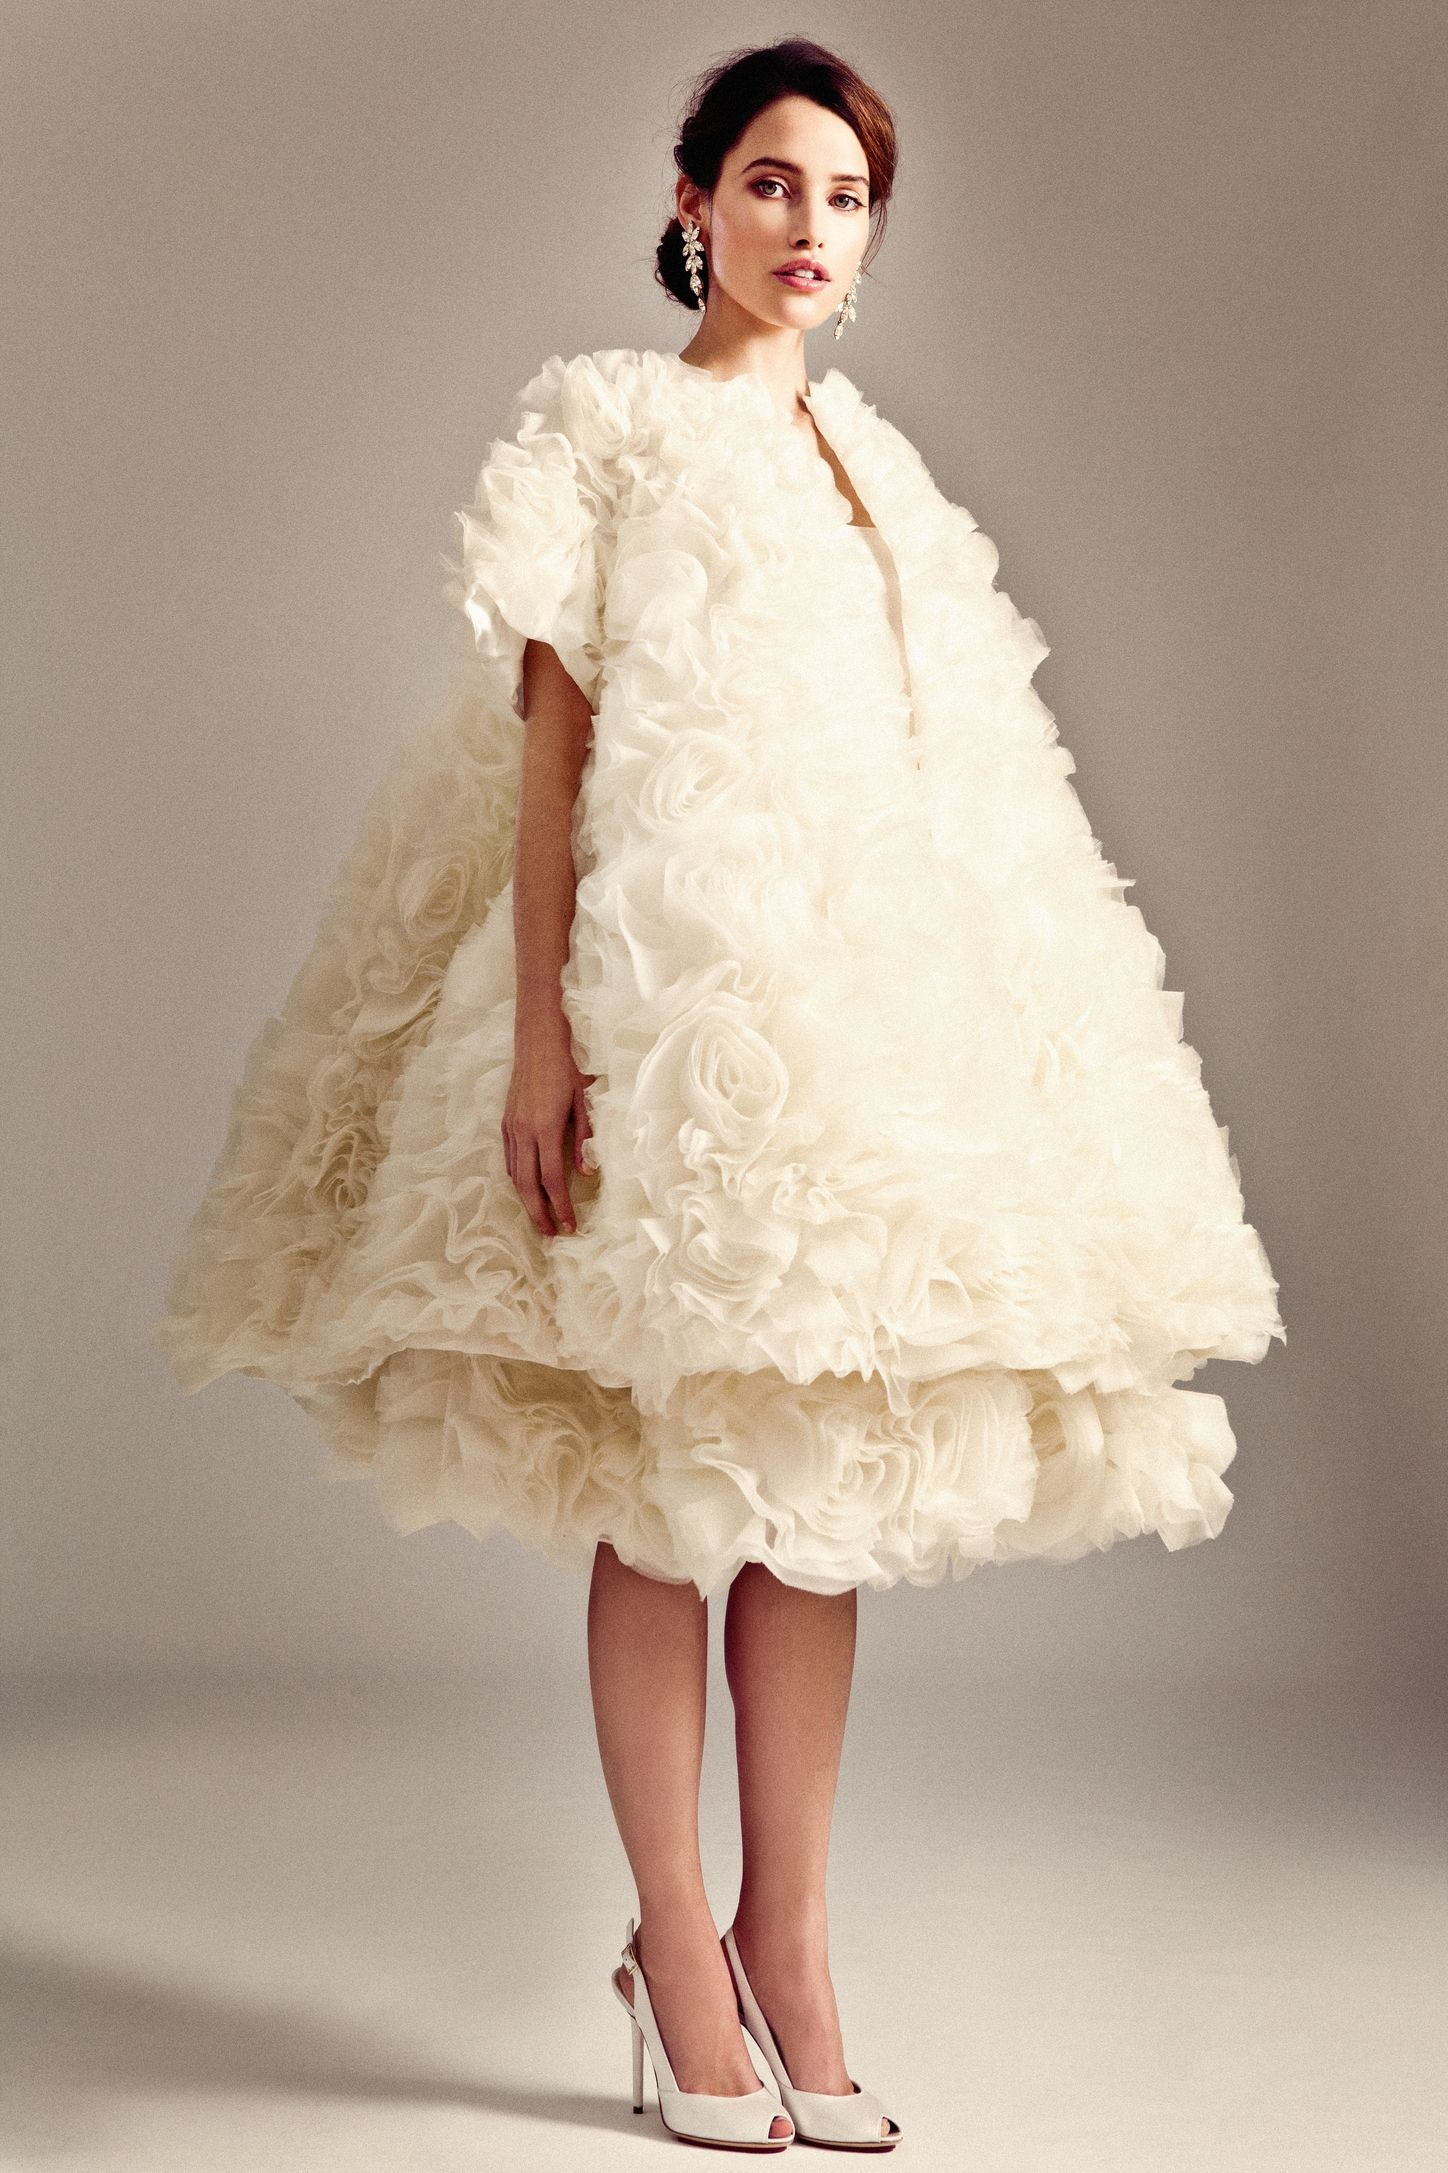 9 Fashion Forward Looks For Only The Most Stylish Brides